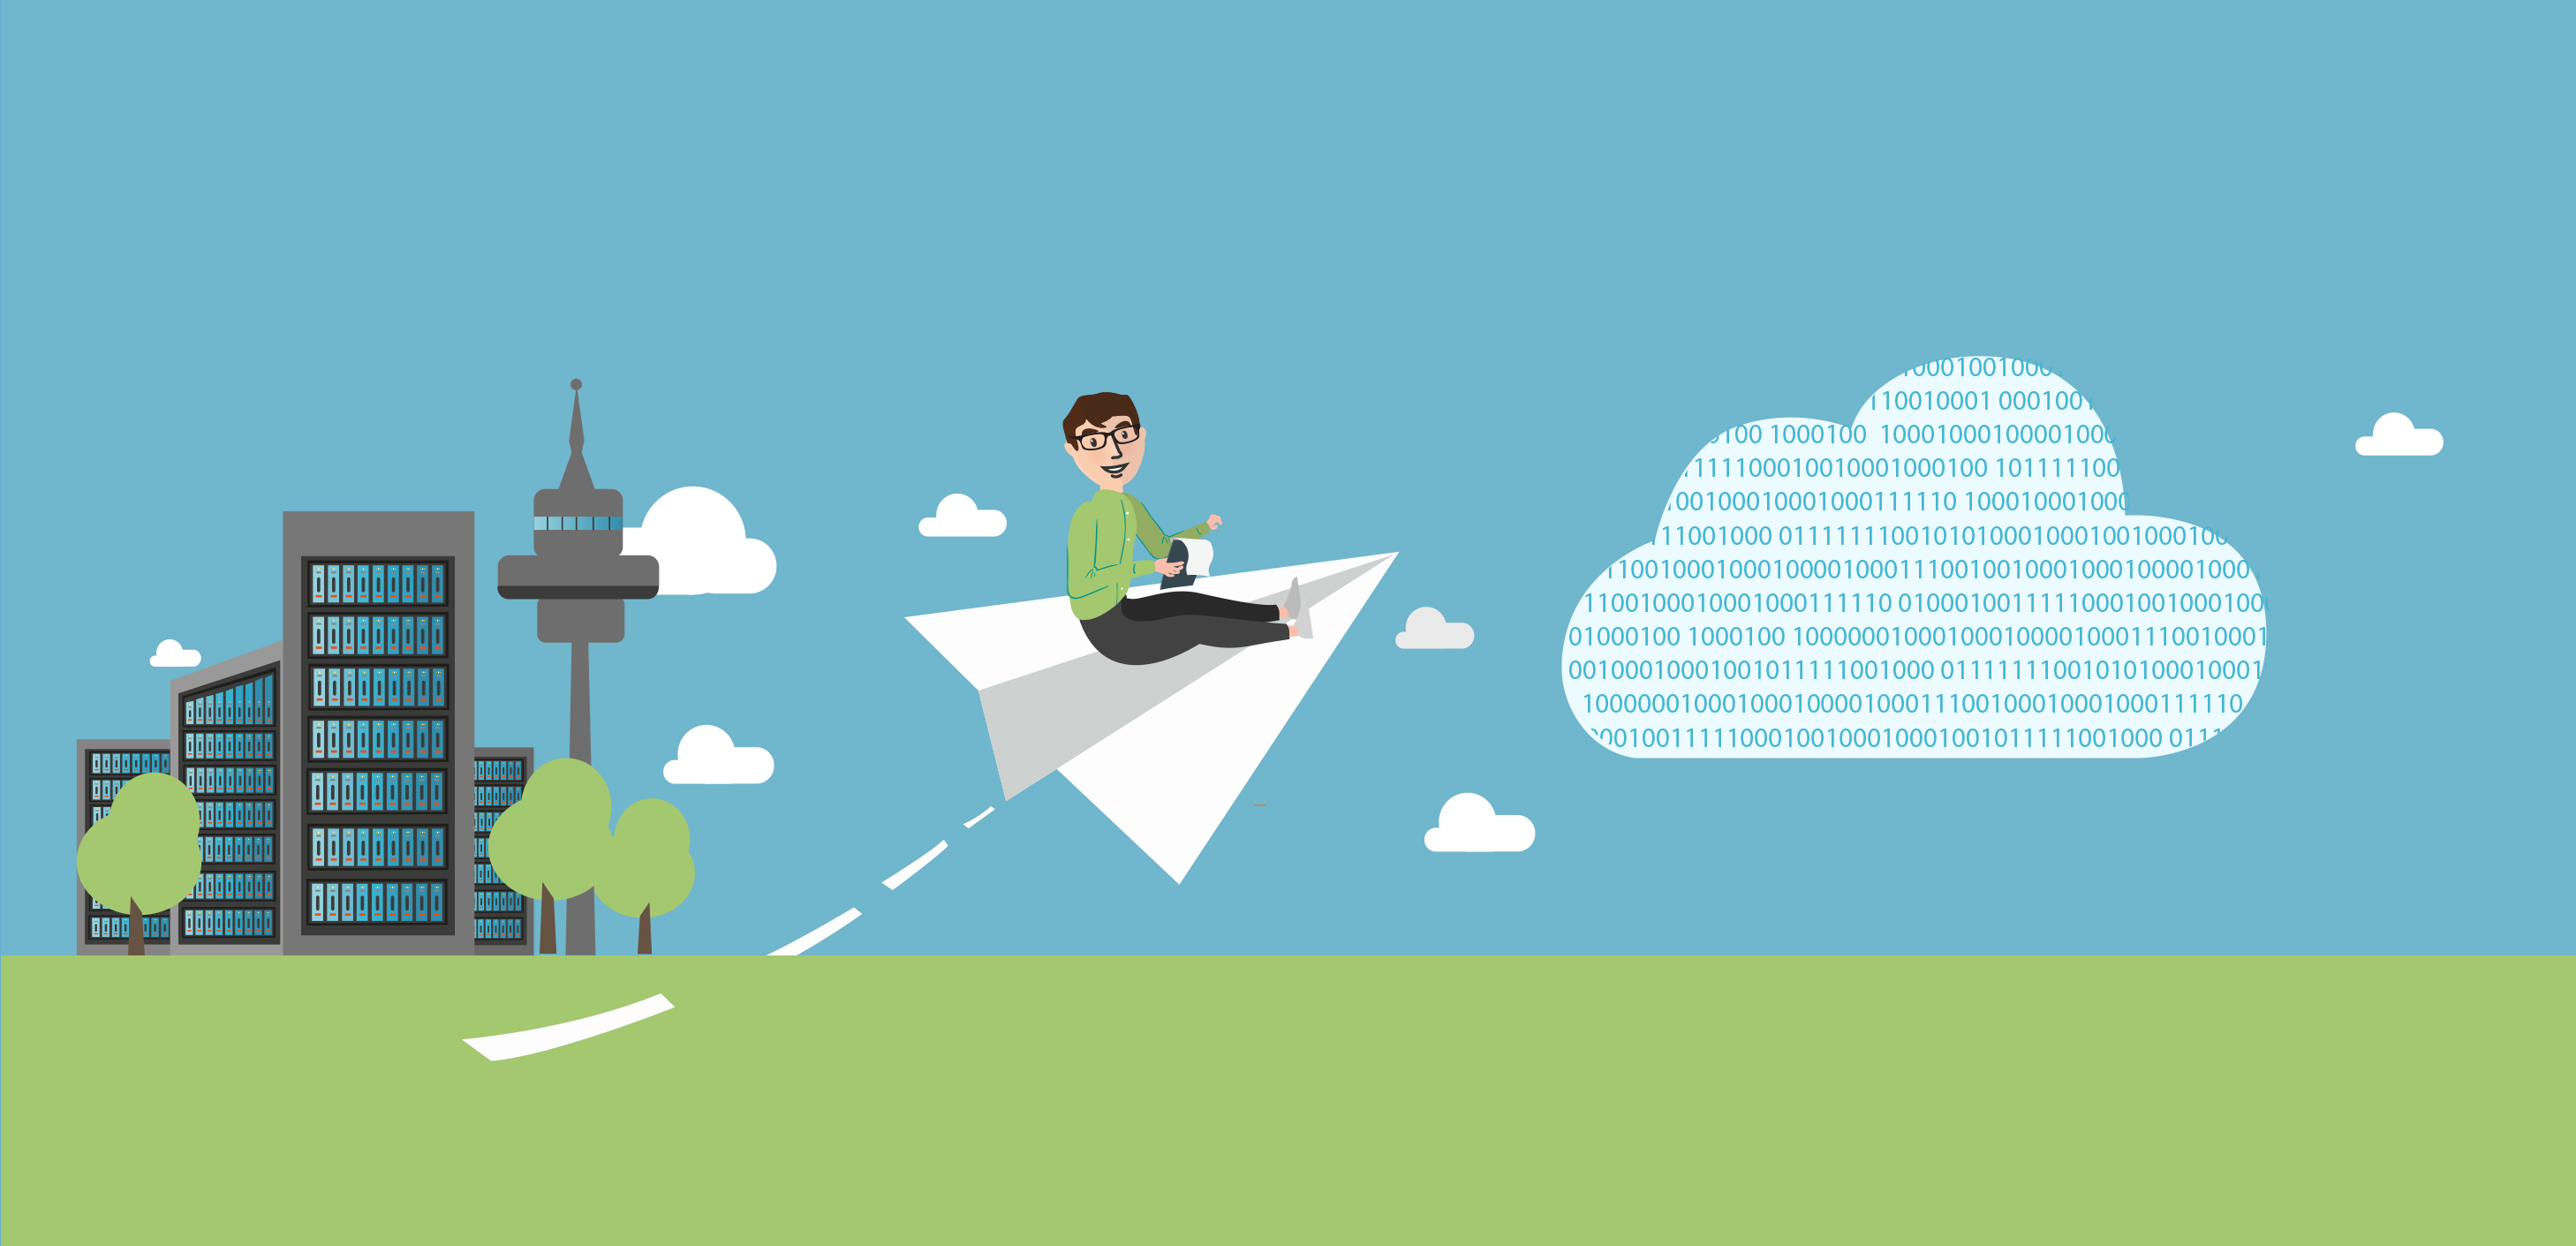 Is everyone migrating to the cloud? If so, why? If not, why not?